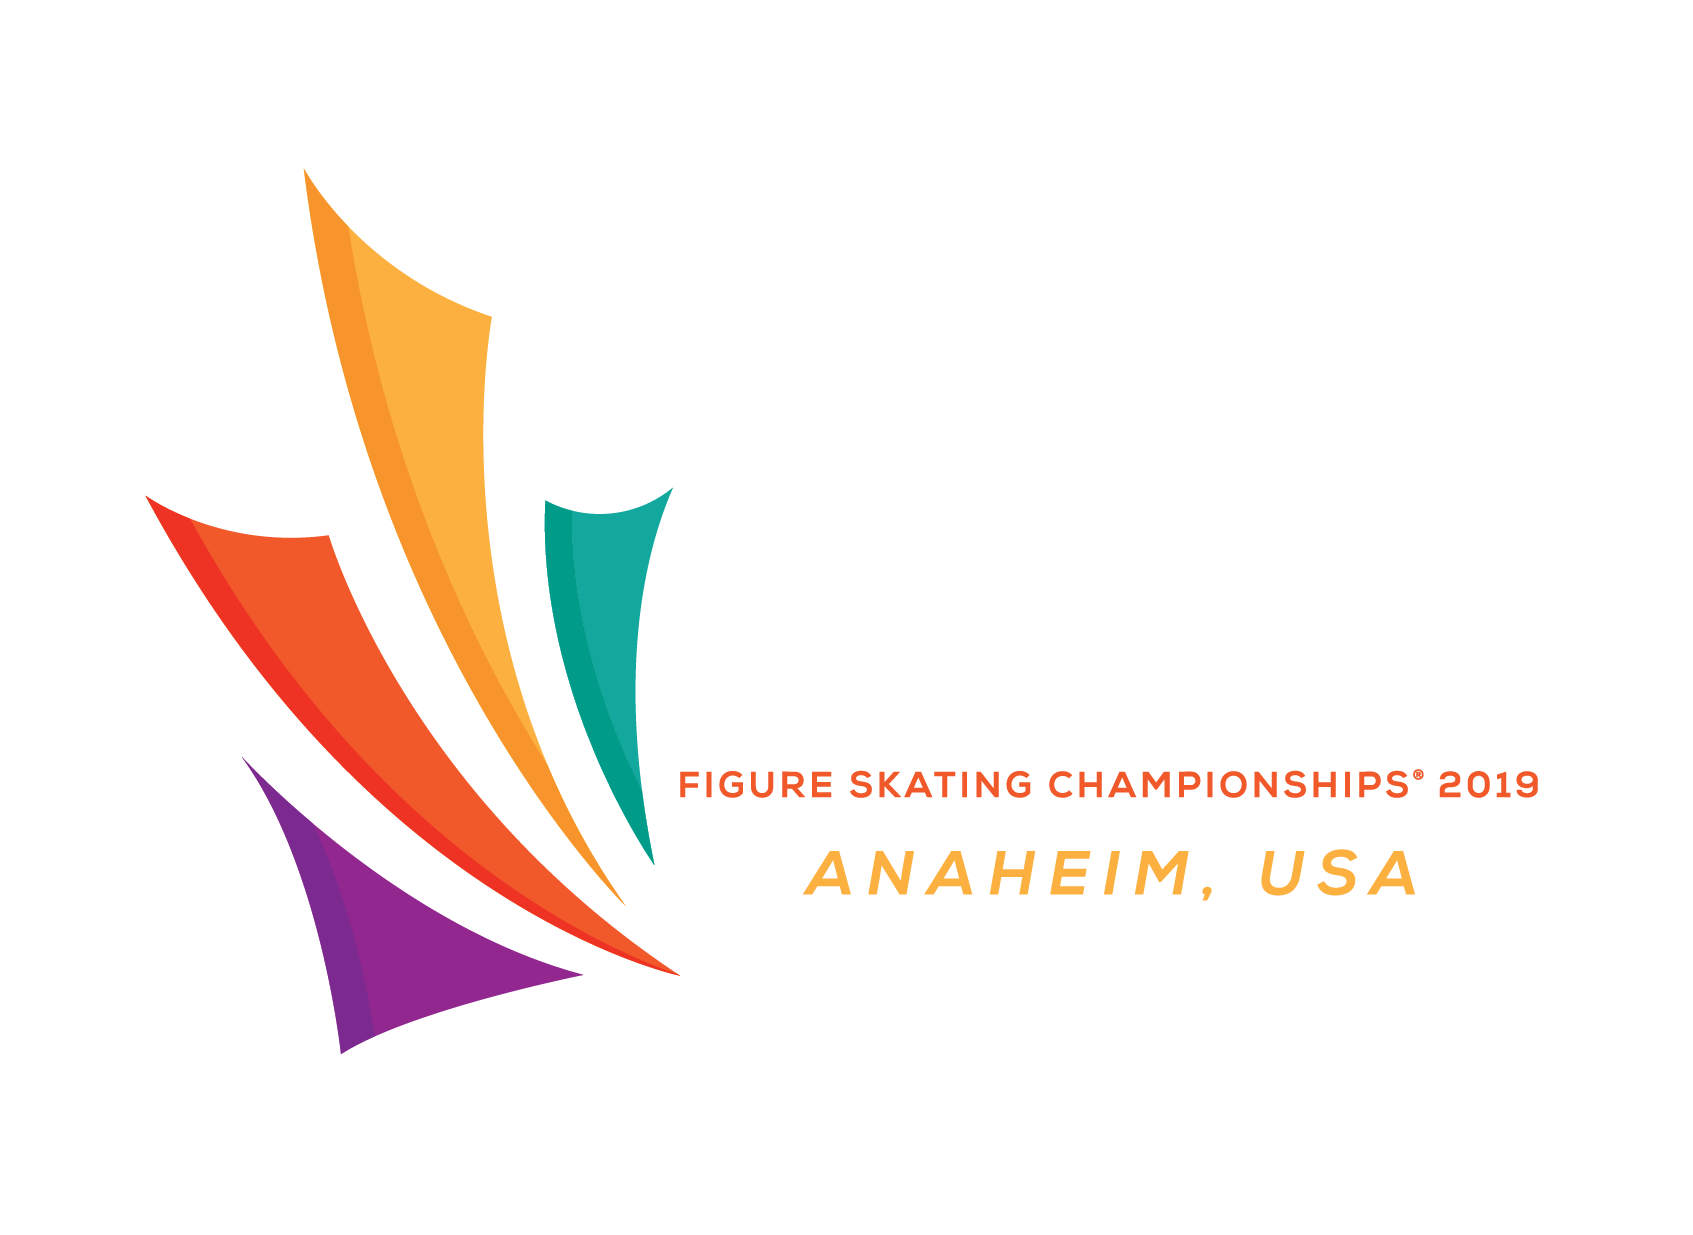 Anaheim to host 2019 ISU Four Continents Figure Skating Championships